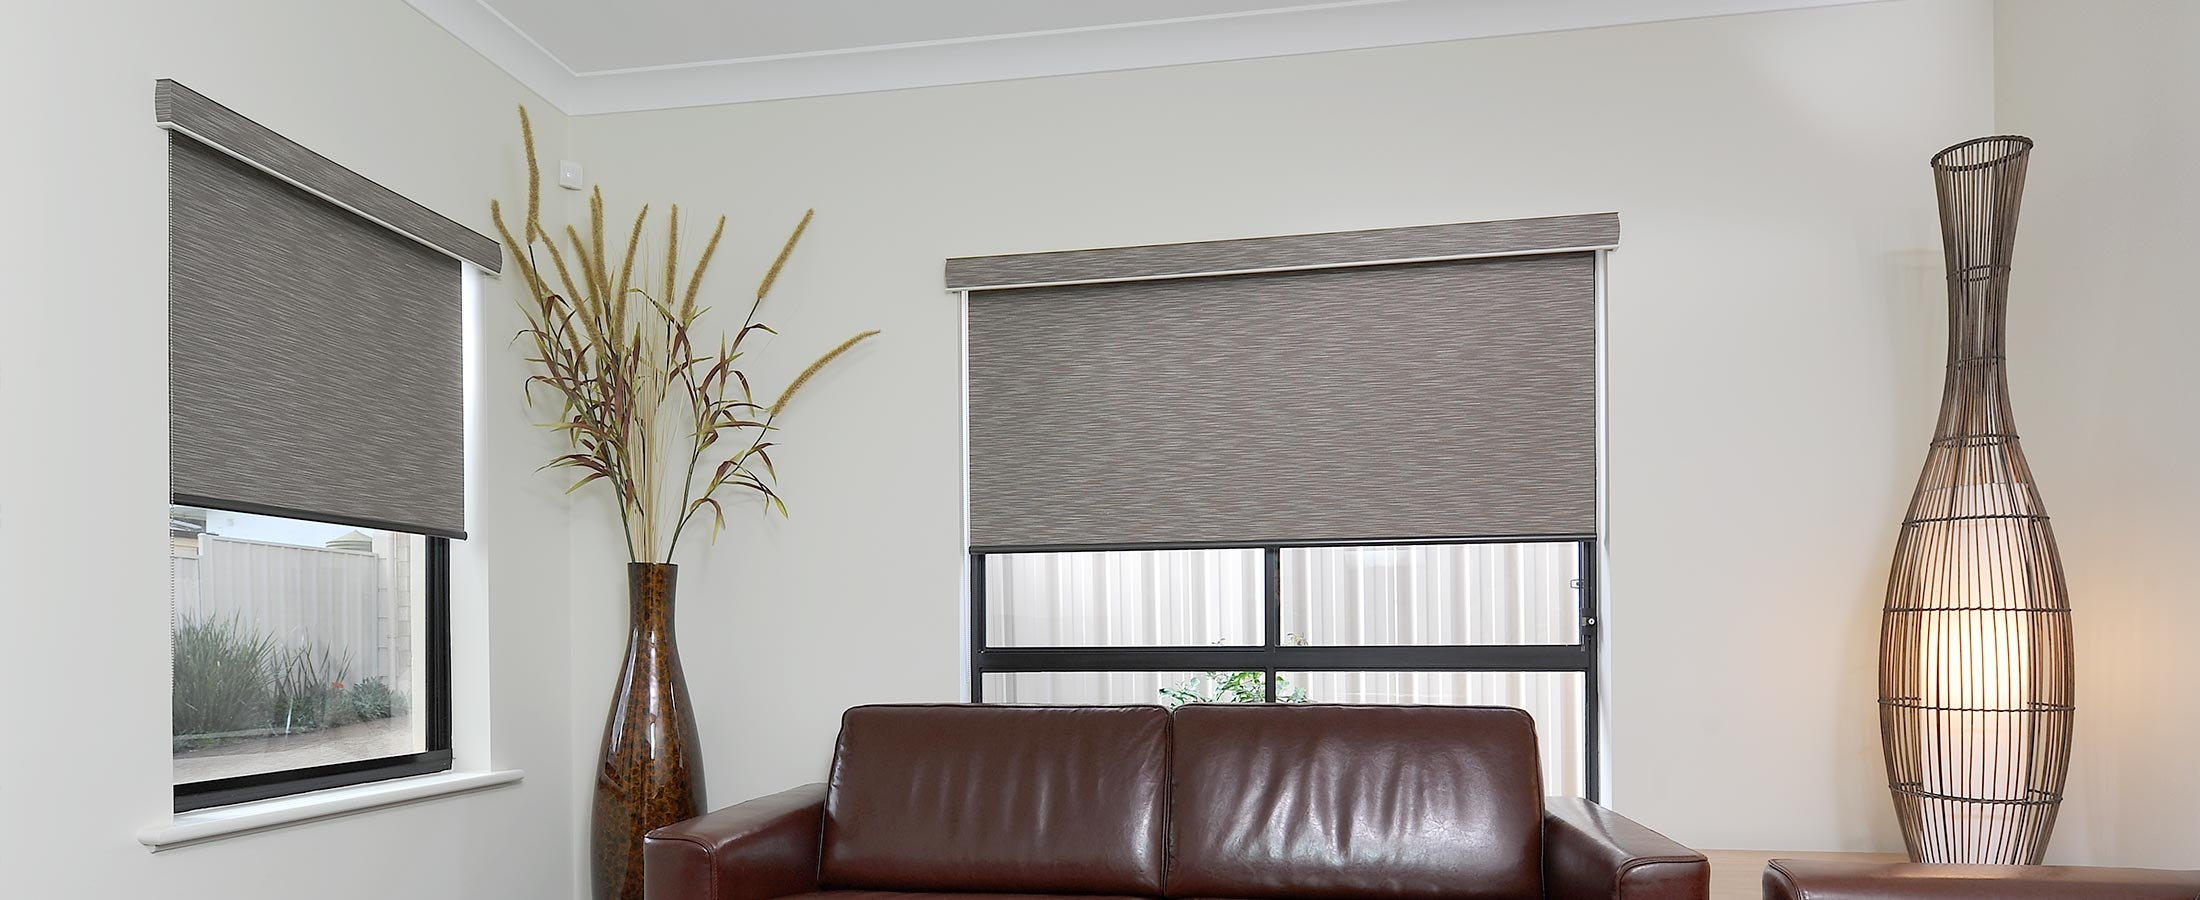 Superior Roller Blinds Perth Abc Blinds Biggest Range Pertaining To Fabric Roller Blinds (Image 13 of 15)